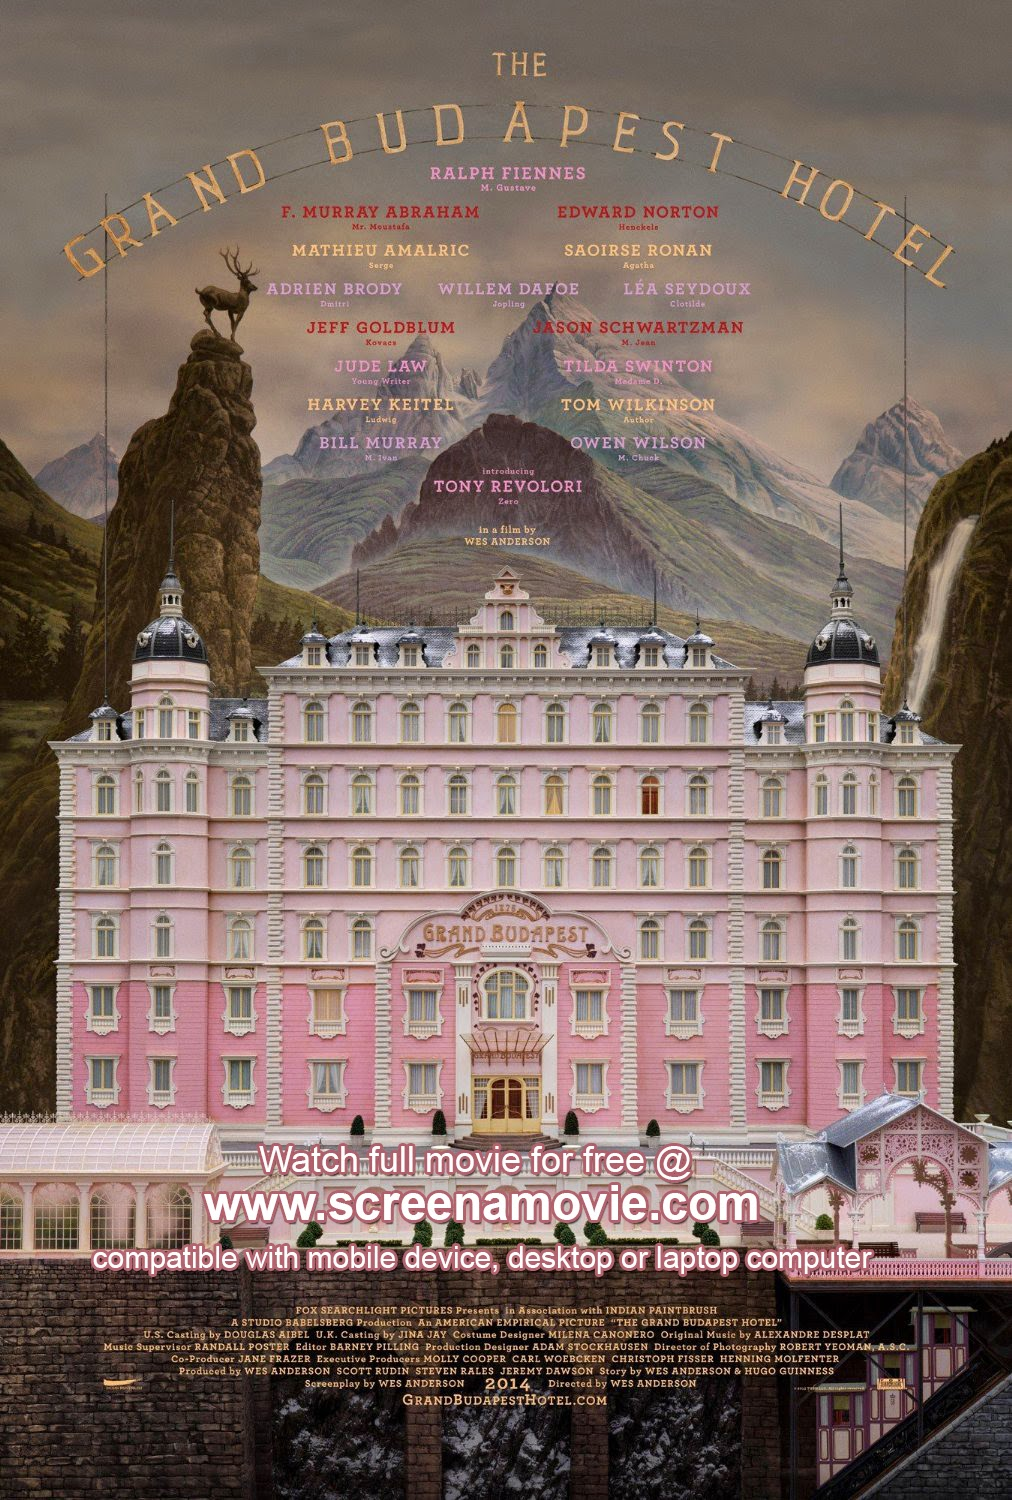 The_Grand_Budapest_Hotel_@screenamovie